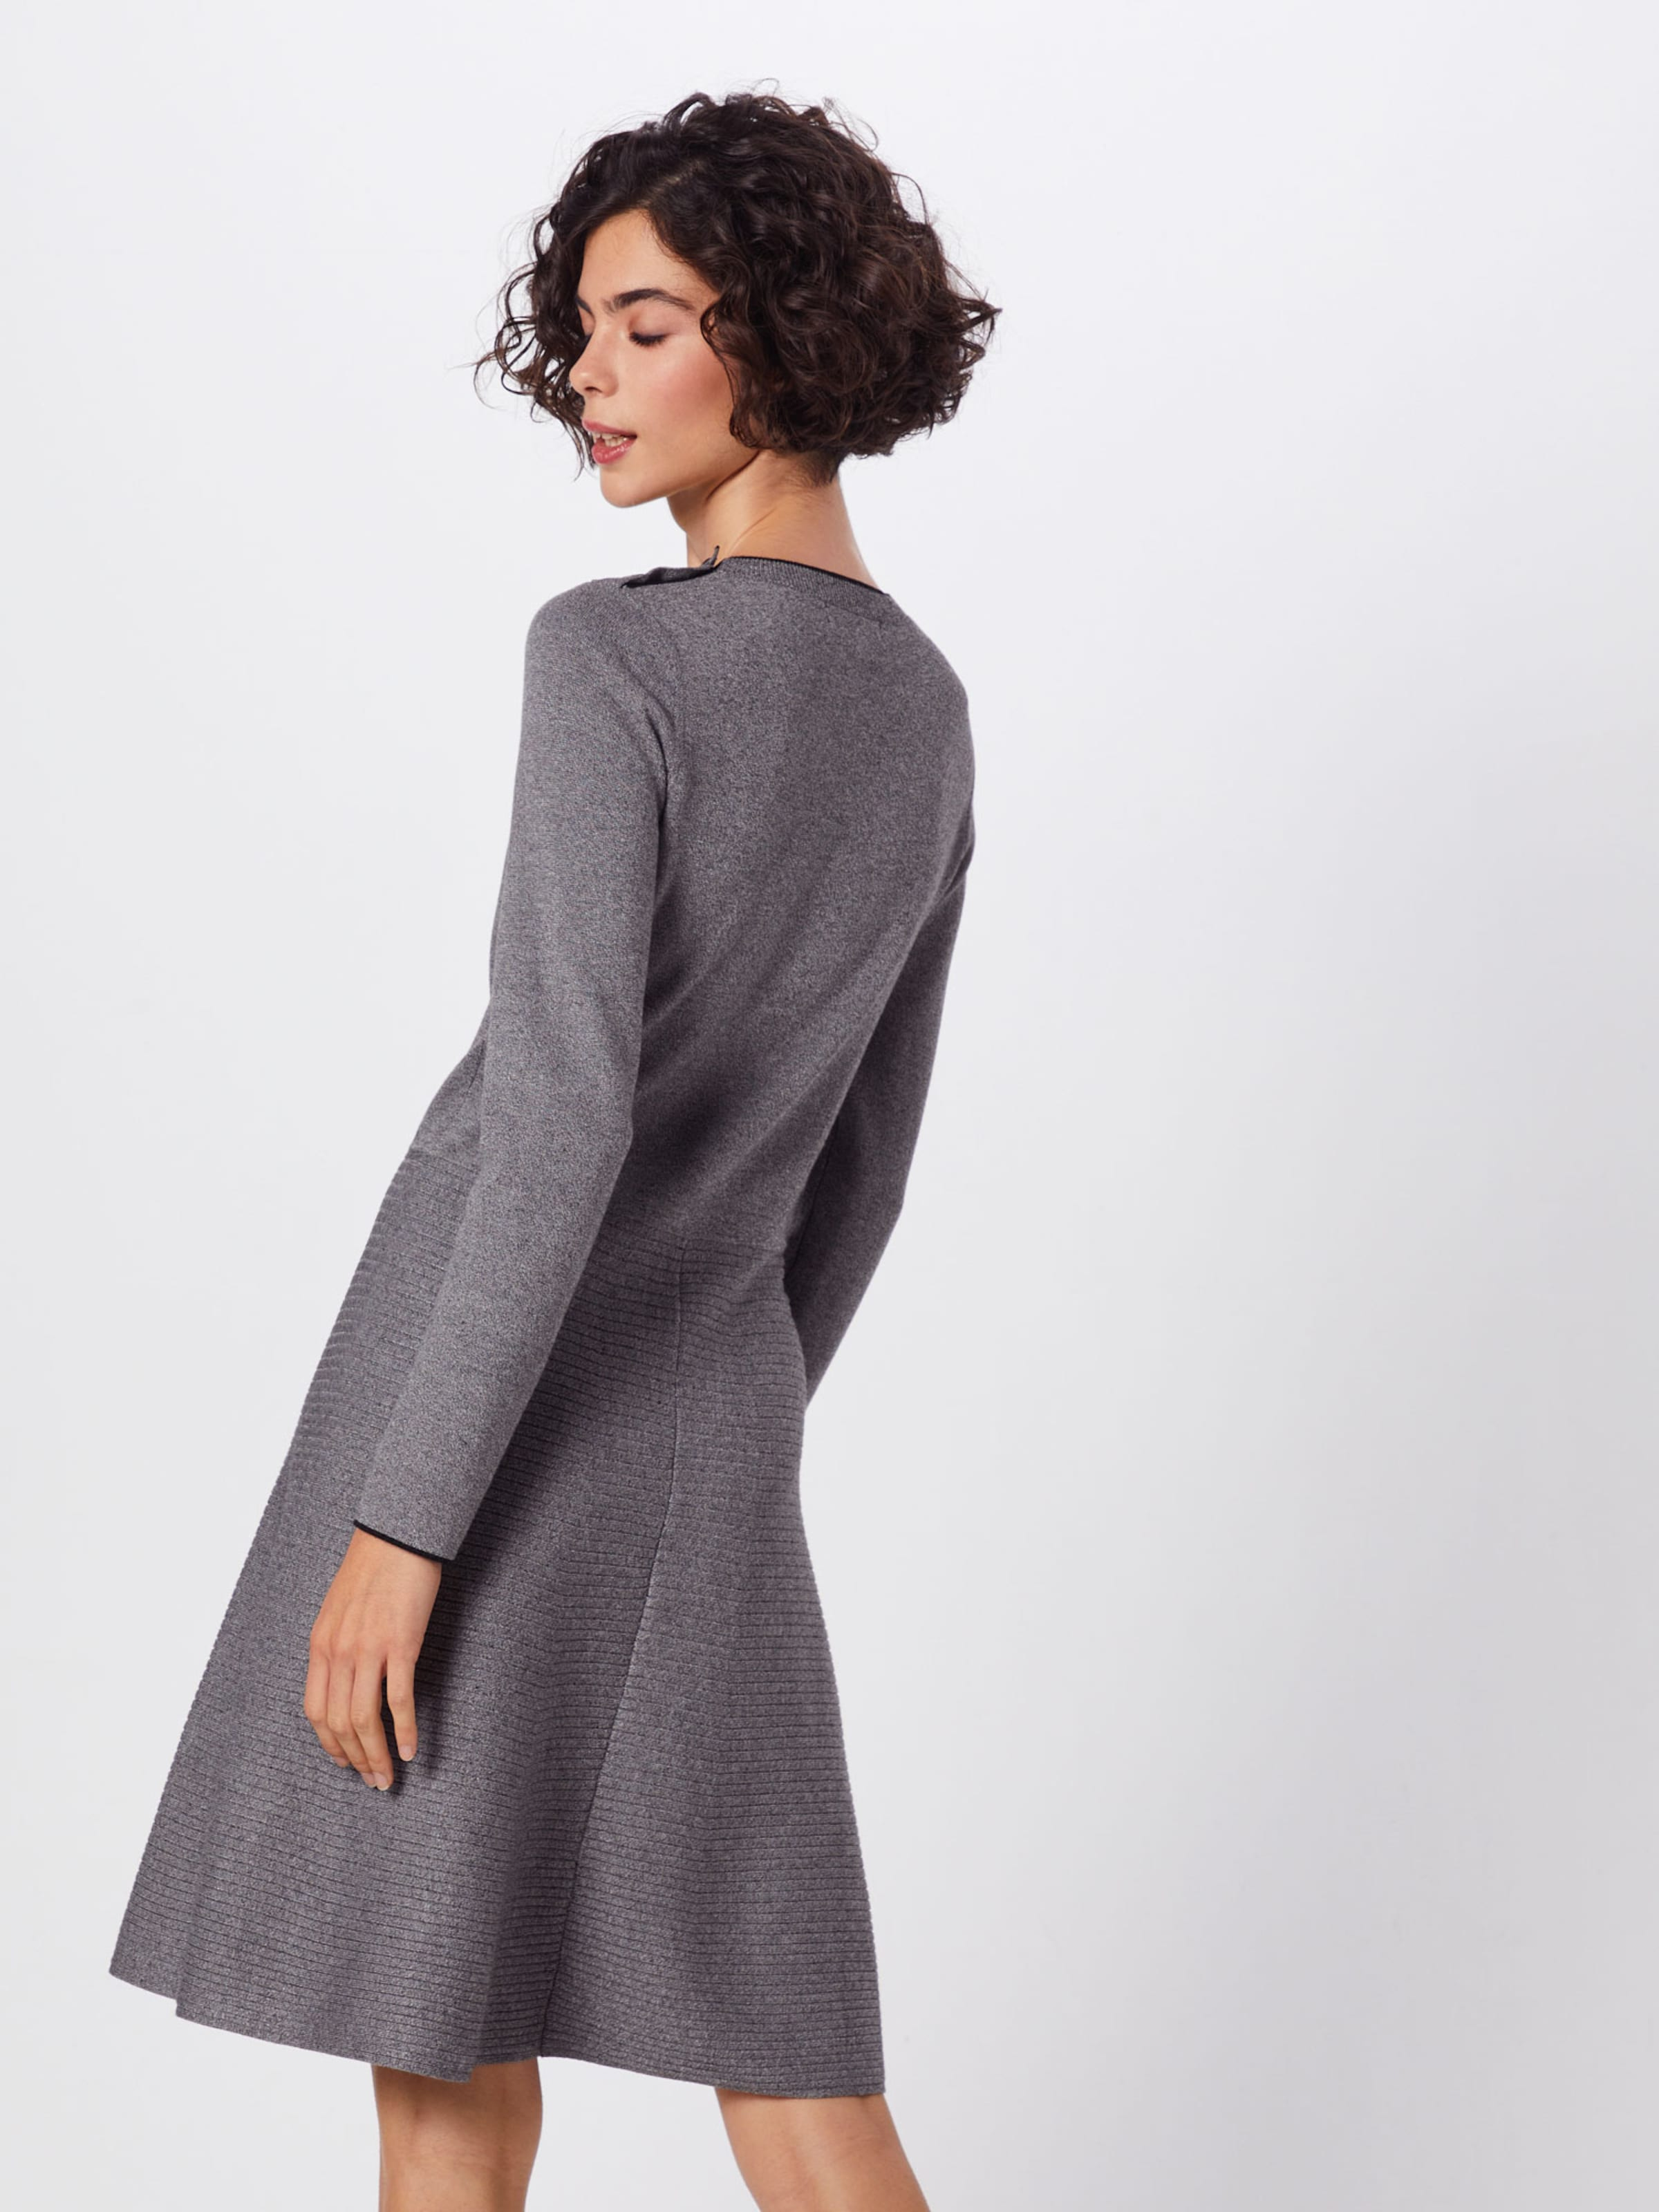 Banana En Clair Flare' Robes And Republic Fit Sweater Gris Maille 'ls tCrxshQd